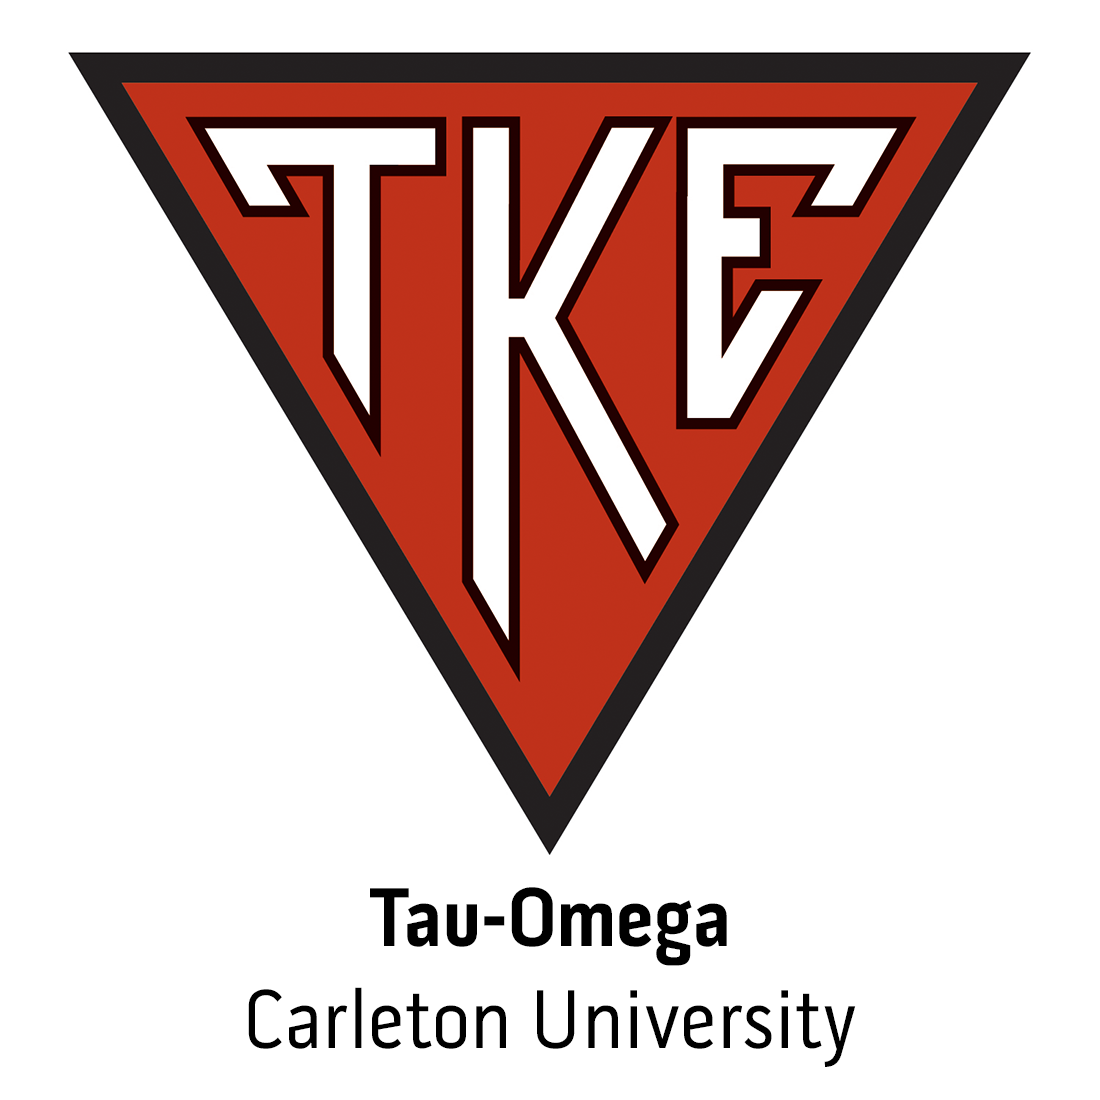 Tau-Omega Chapter at Carleton University